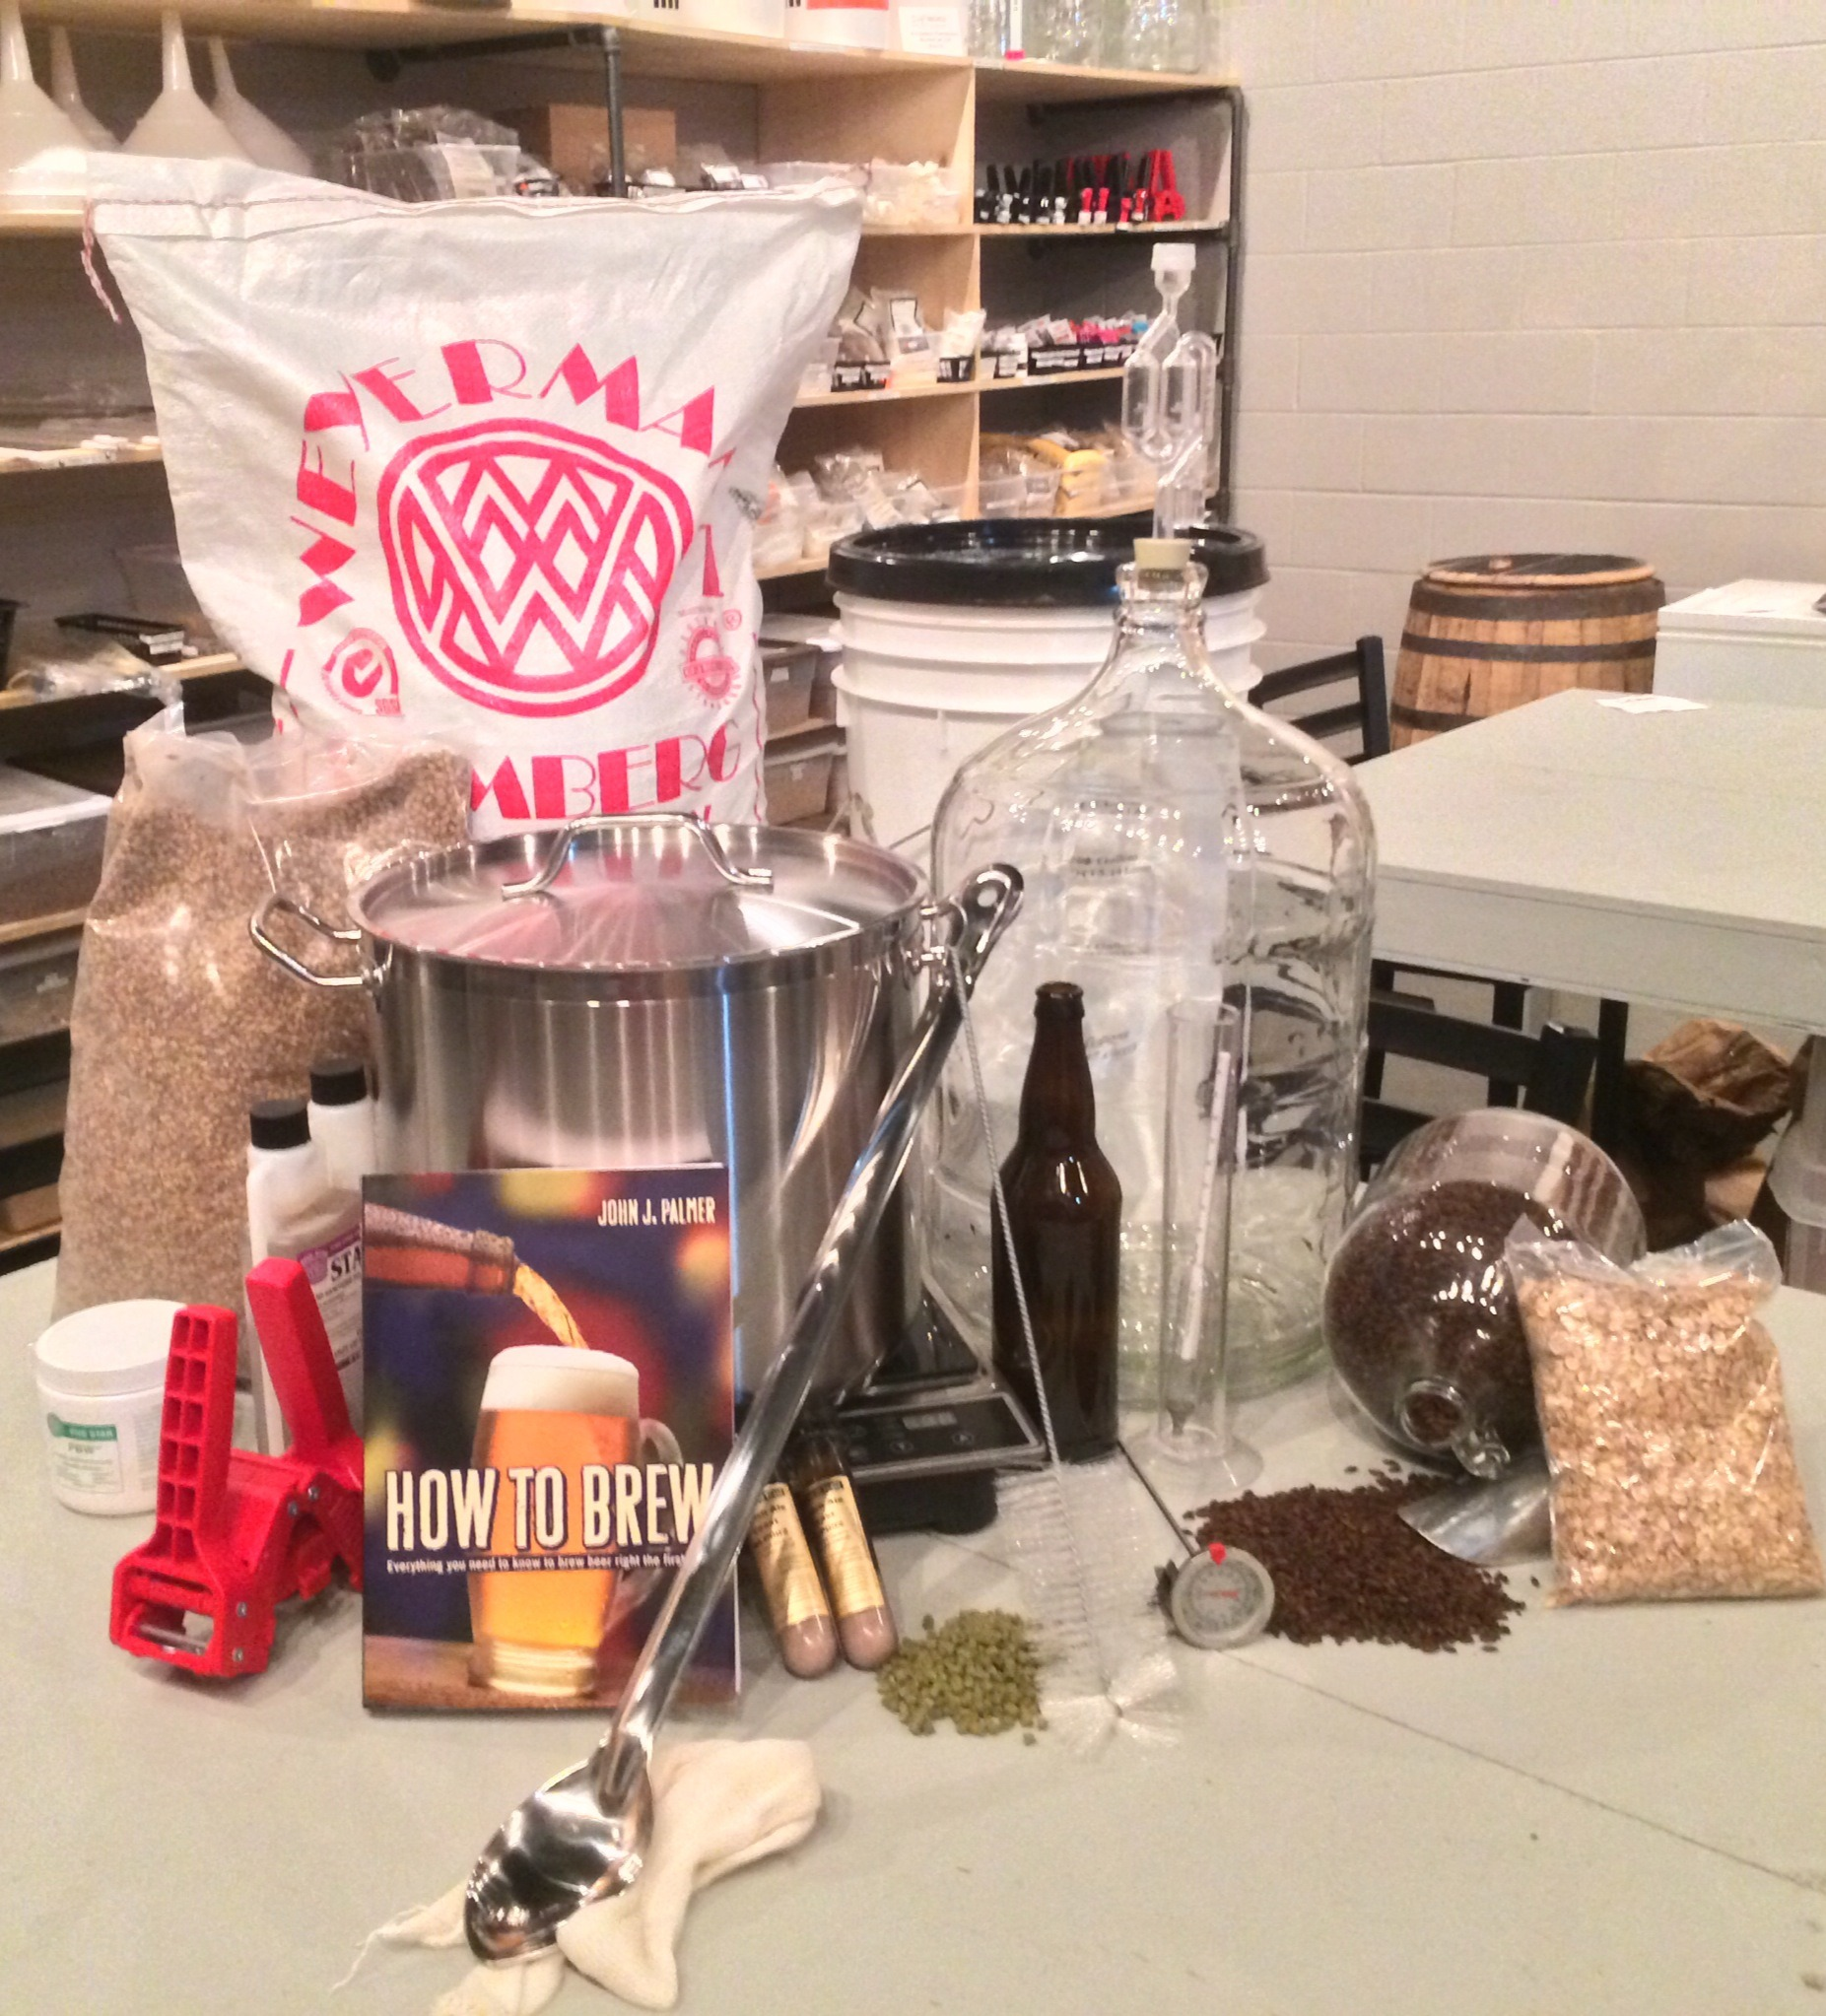 Home Brewing 101 Tuesday,  December 1st at 6pm